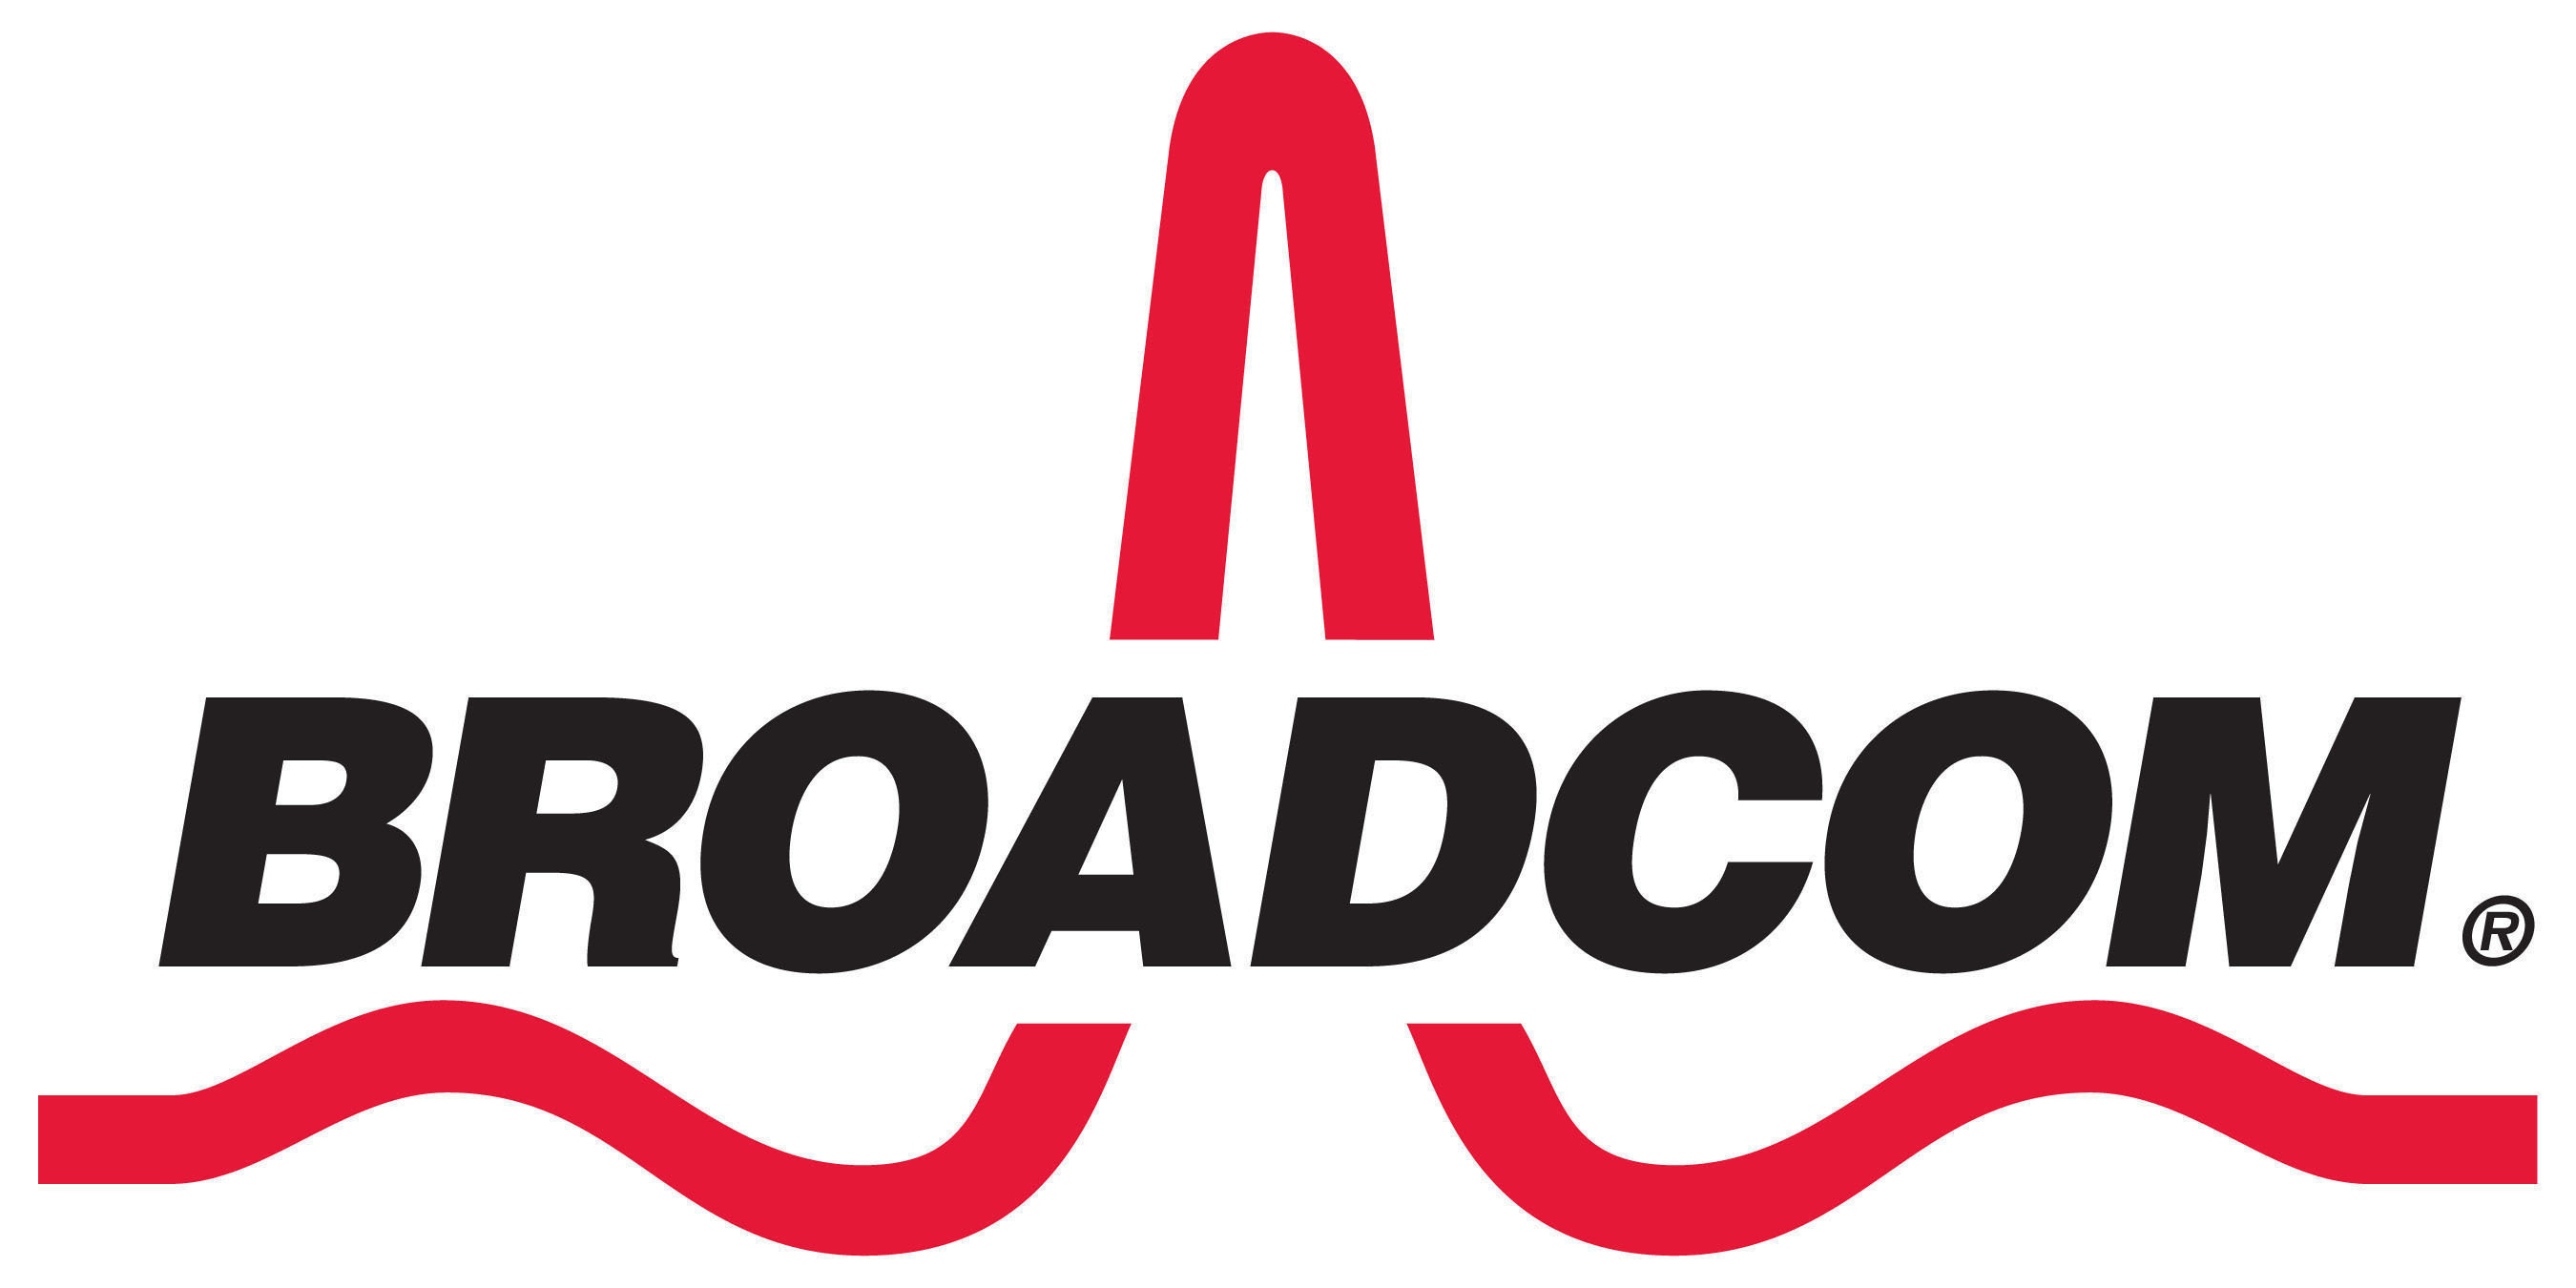 Broadcom Corporation is a global leader in semiconductors for wired and wireless communications. Our products enable the delivery of voice, video, data and multimedia to and throughout the home, the office and the mobile environment. Broadcom provides the industry's broadest portfolio of state-of-the-art system-on-a-chip and software solutions to manufacturers of computing and networking equipment, digital entertainment and broadband access products, and mobile devices. These solutions support our core mission: Connecting everything(r). www.broadcom.com. (PRNewsFoto/BROADCOM) (PRNewsFoto/BROADCOM)